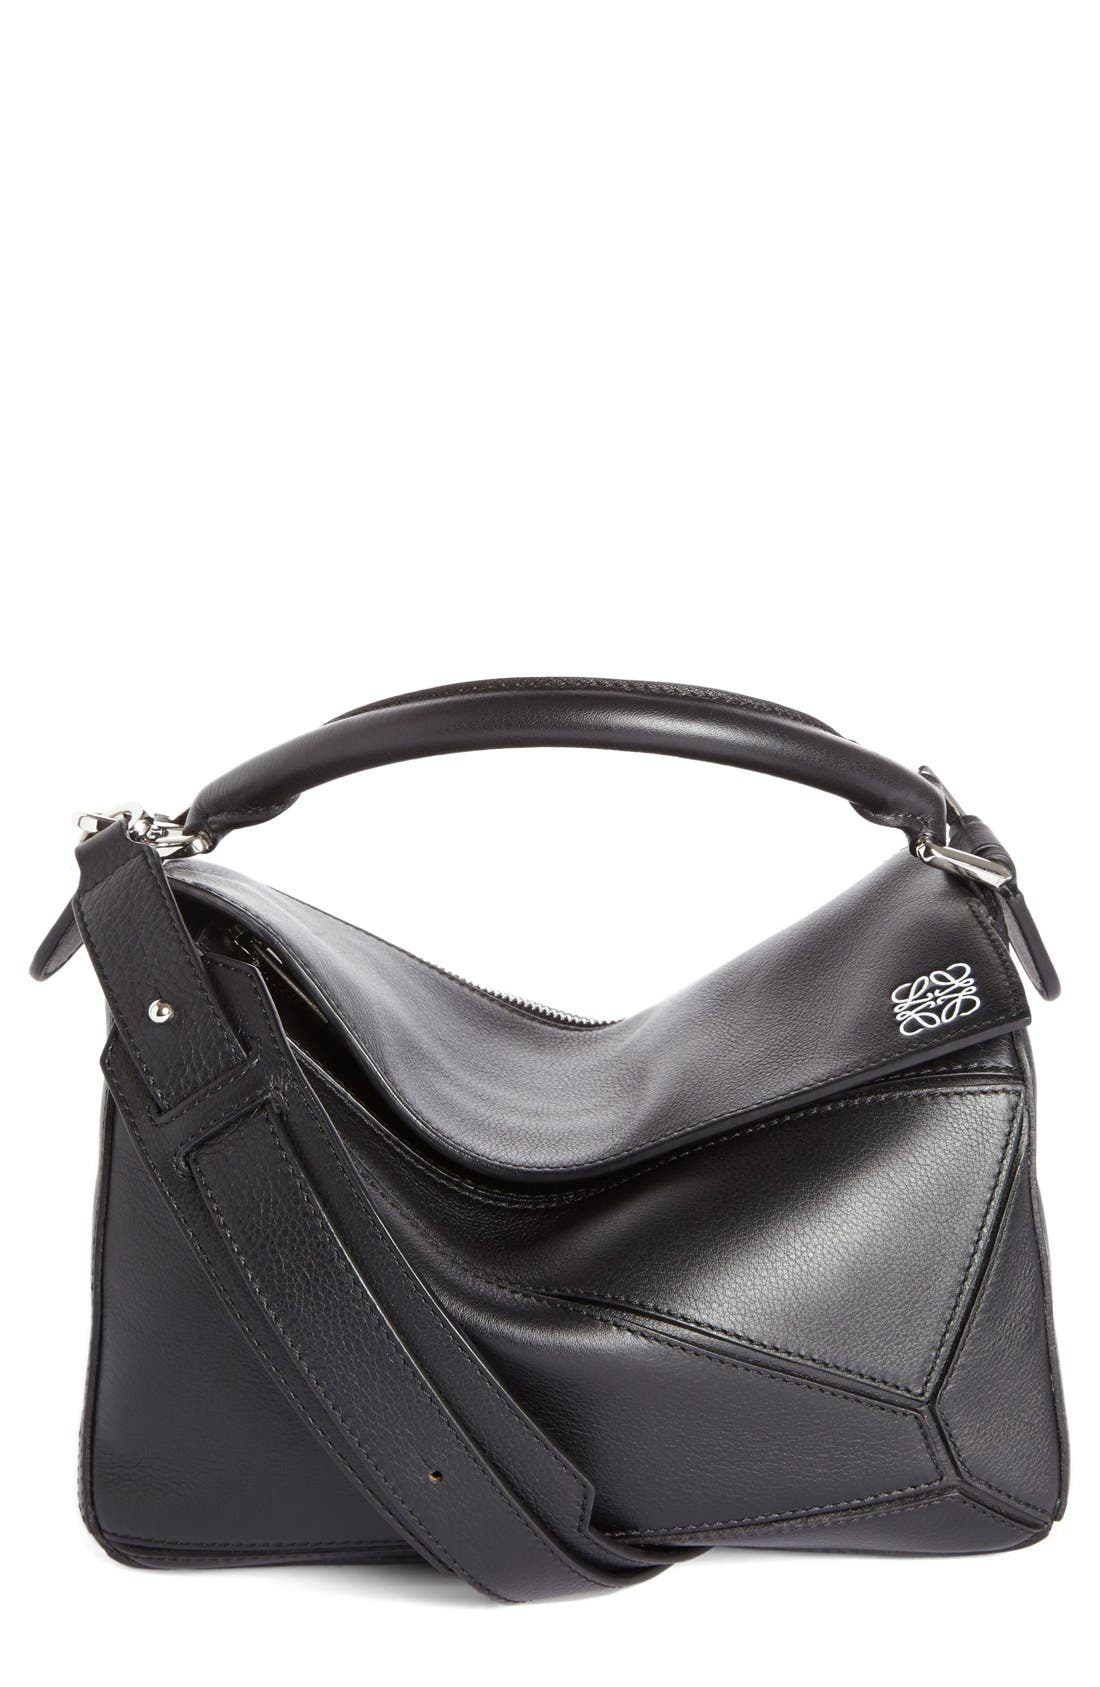 LOEWE 'Small Puzzle' Calfskin Leather Bag